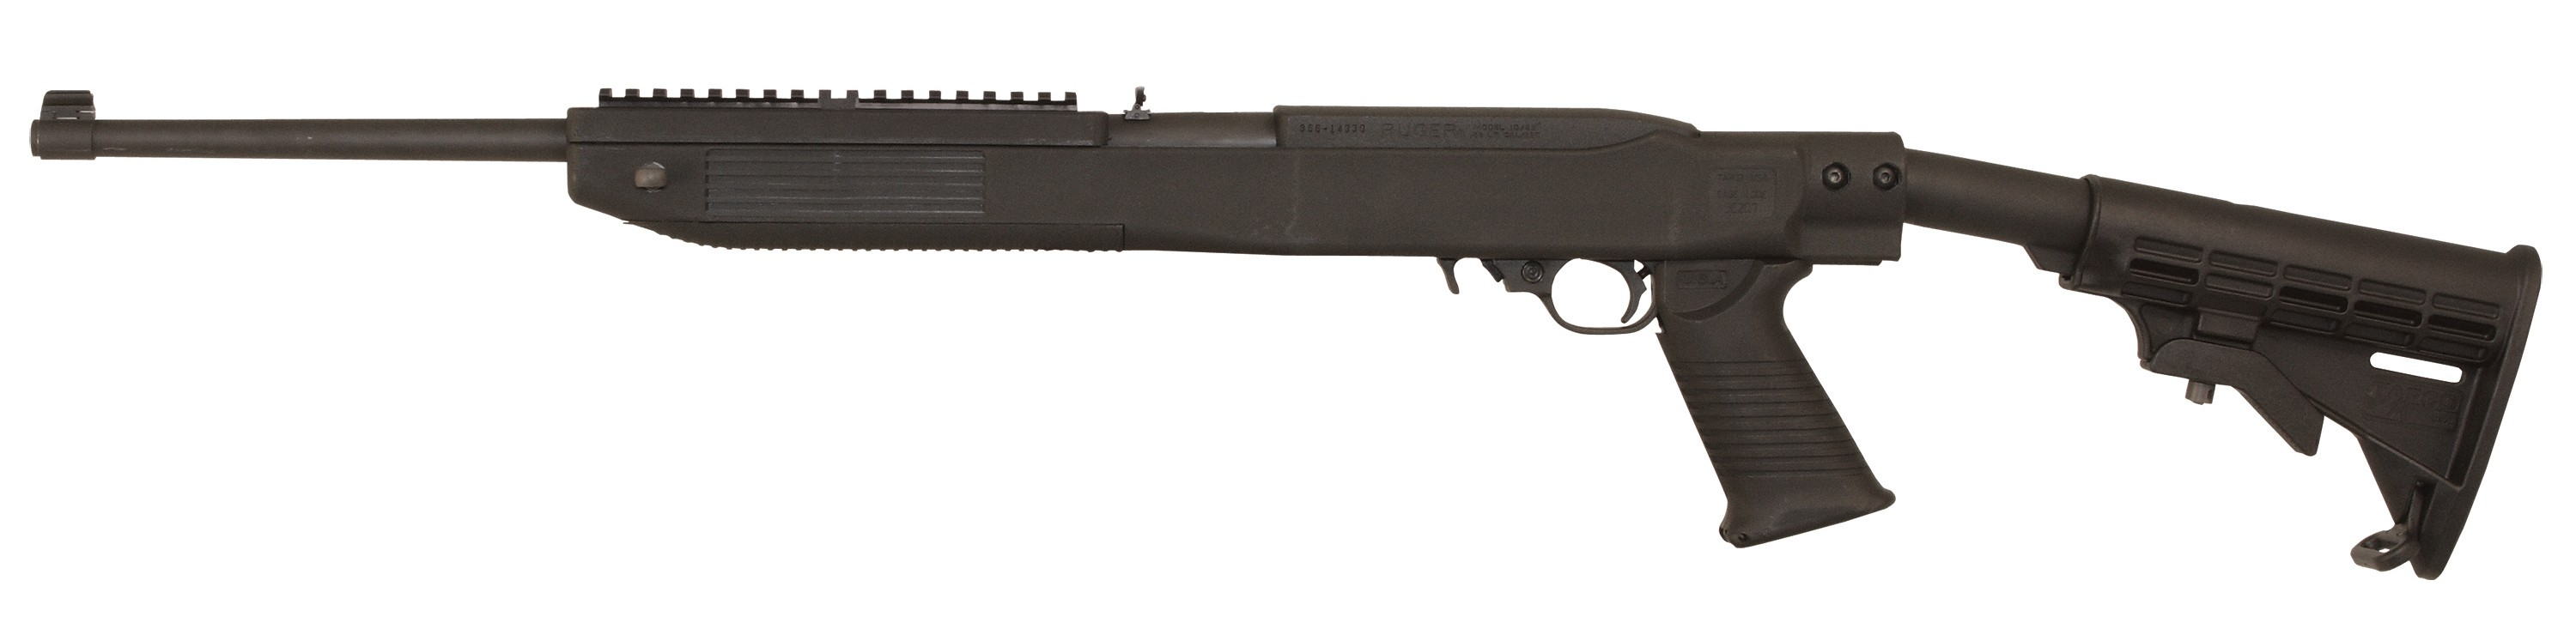 Intrafuse 1022 Standard Stock  M1 Carbine Synthetic Stock